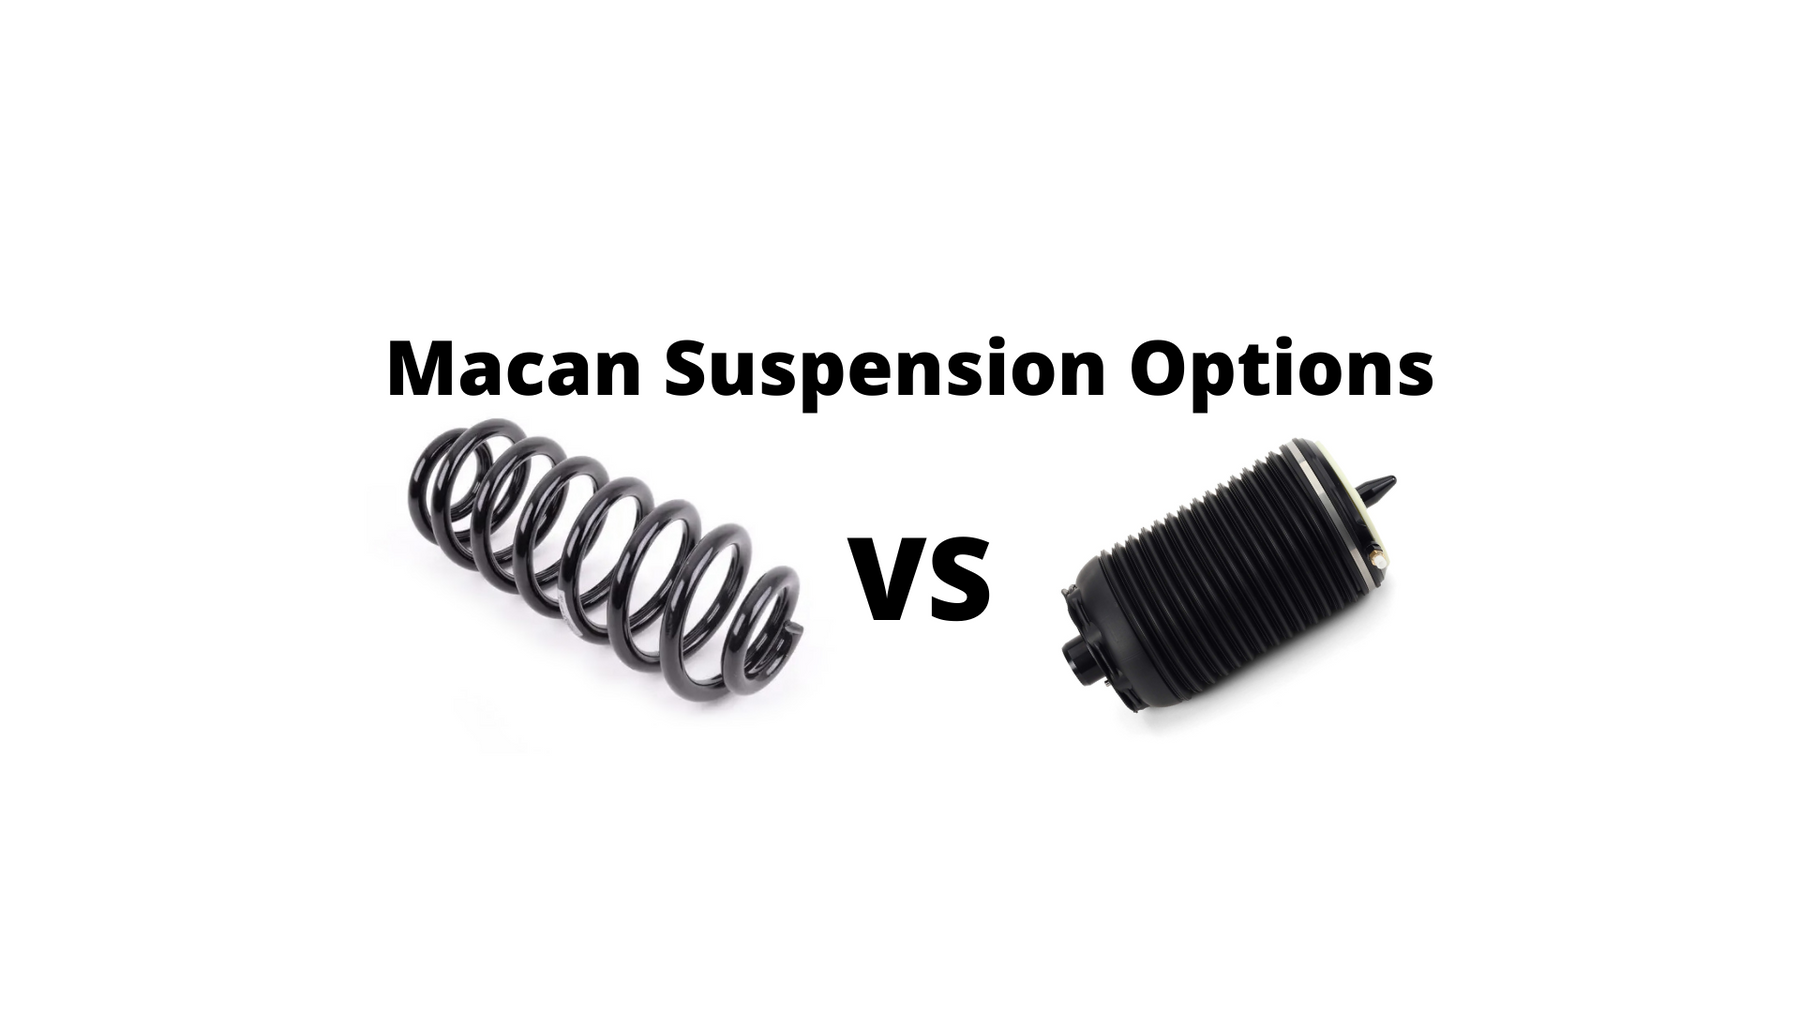 Macan Suspension Options: Lowering 101